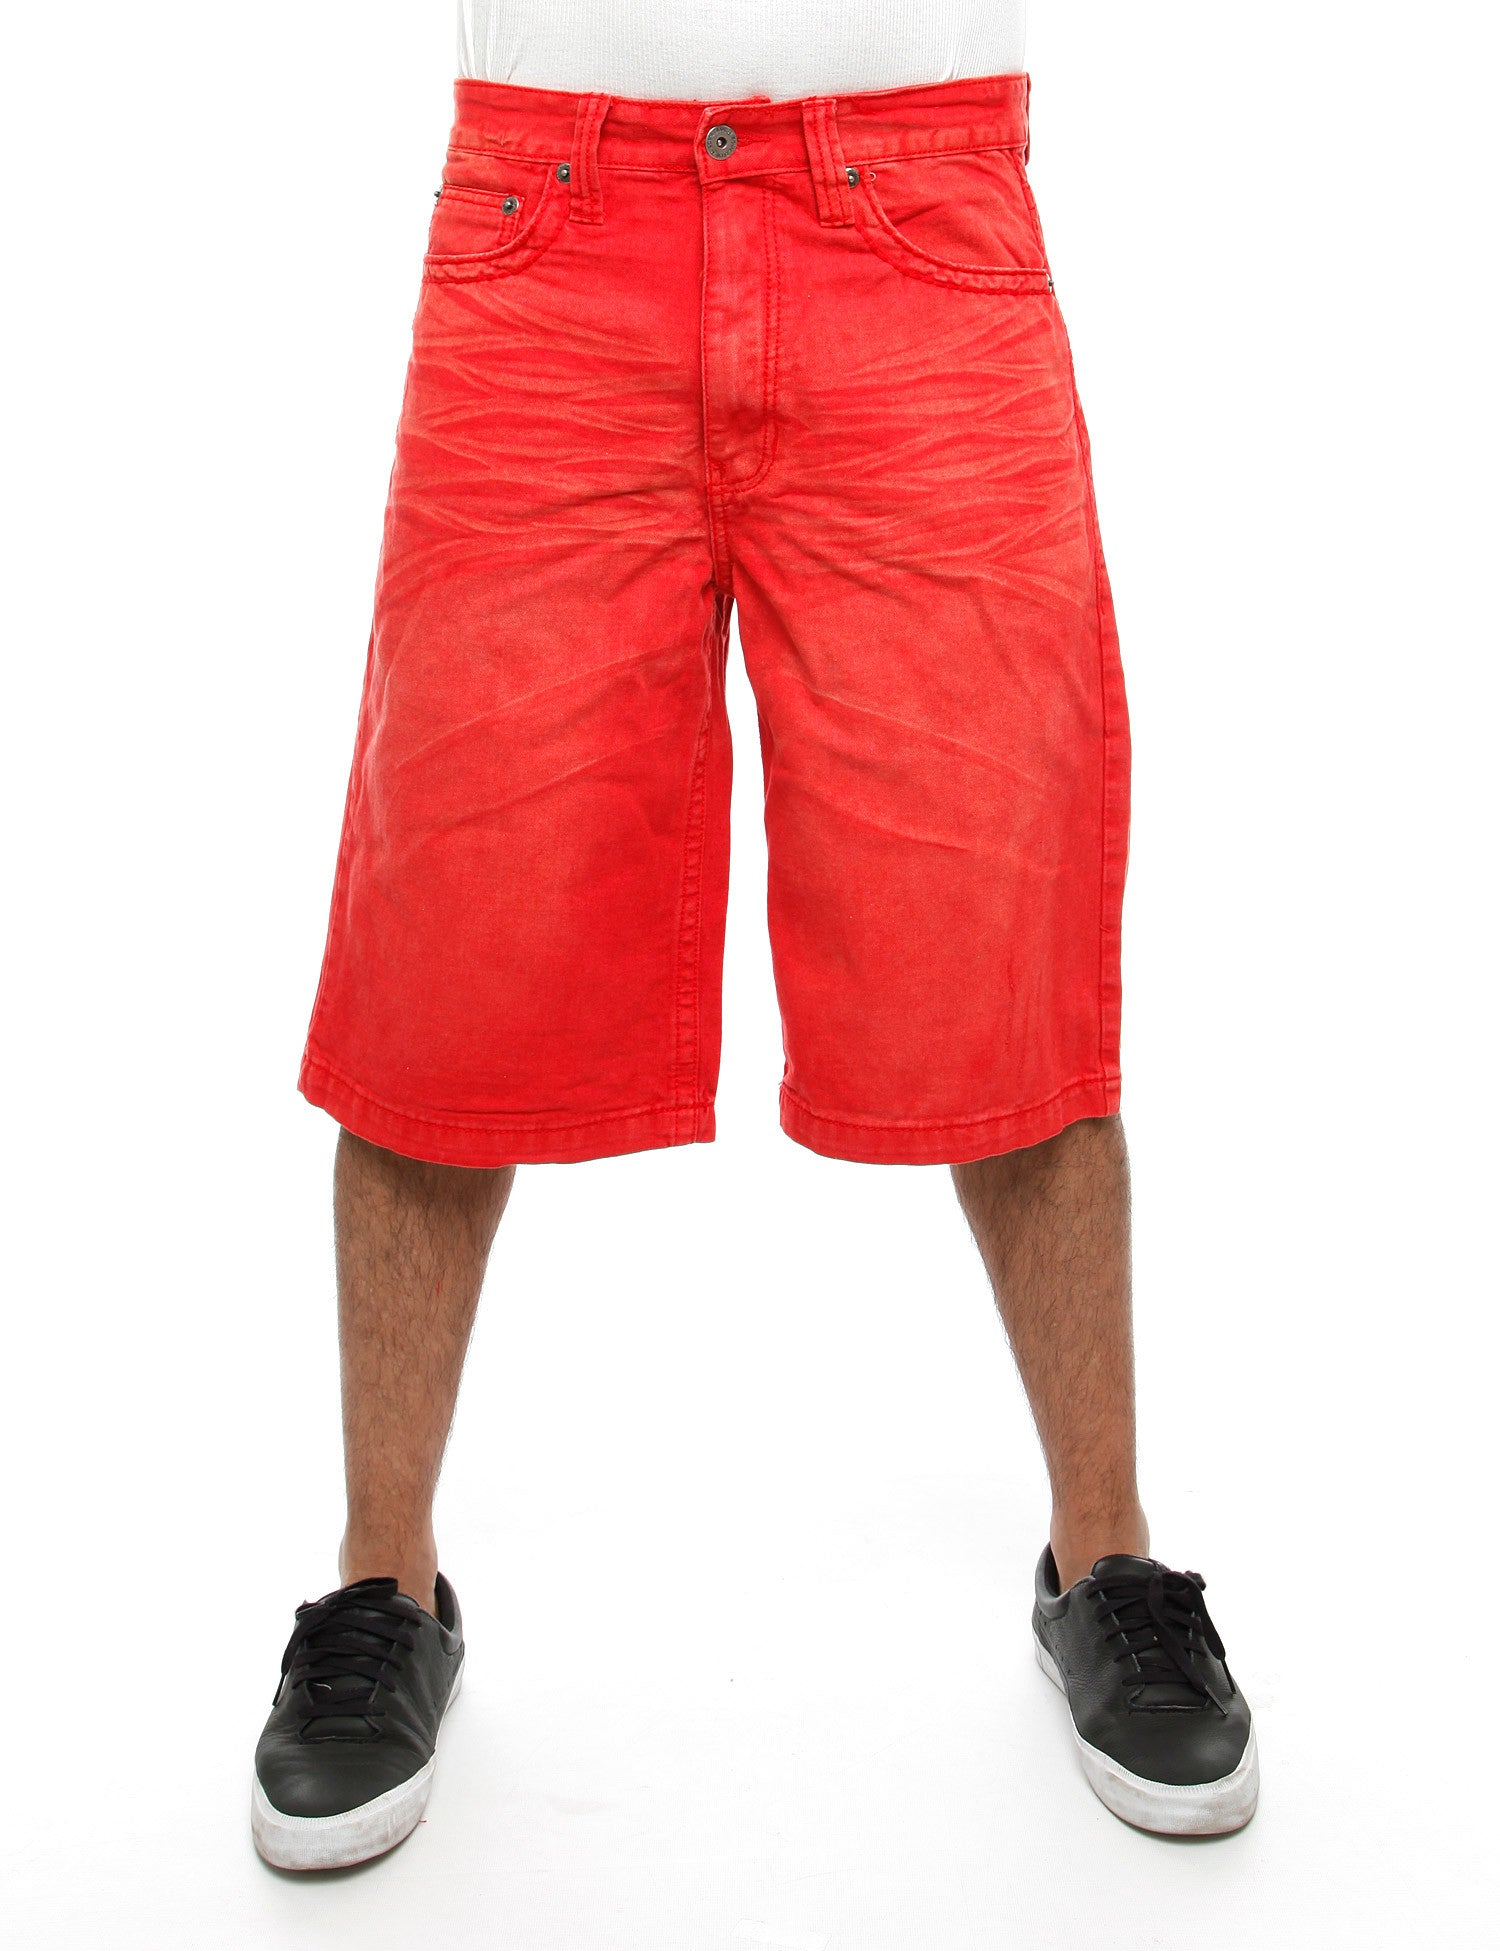 Royal Blue Shorts 9013 Red